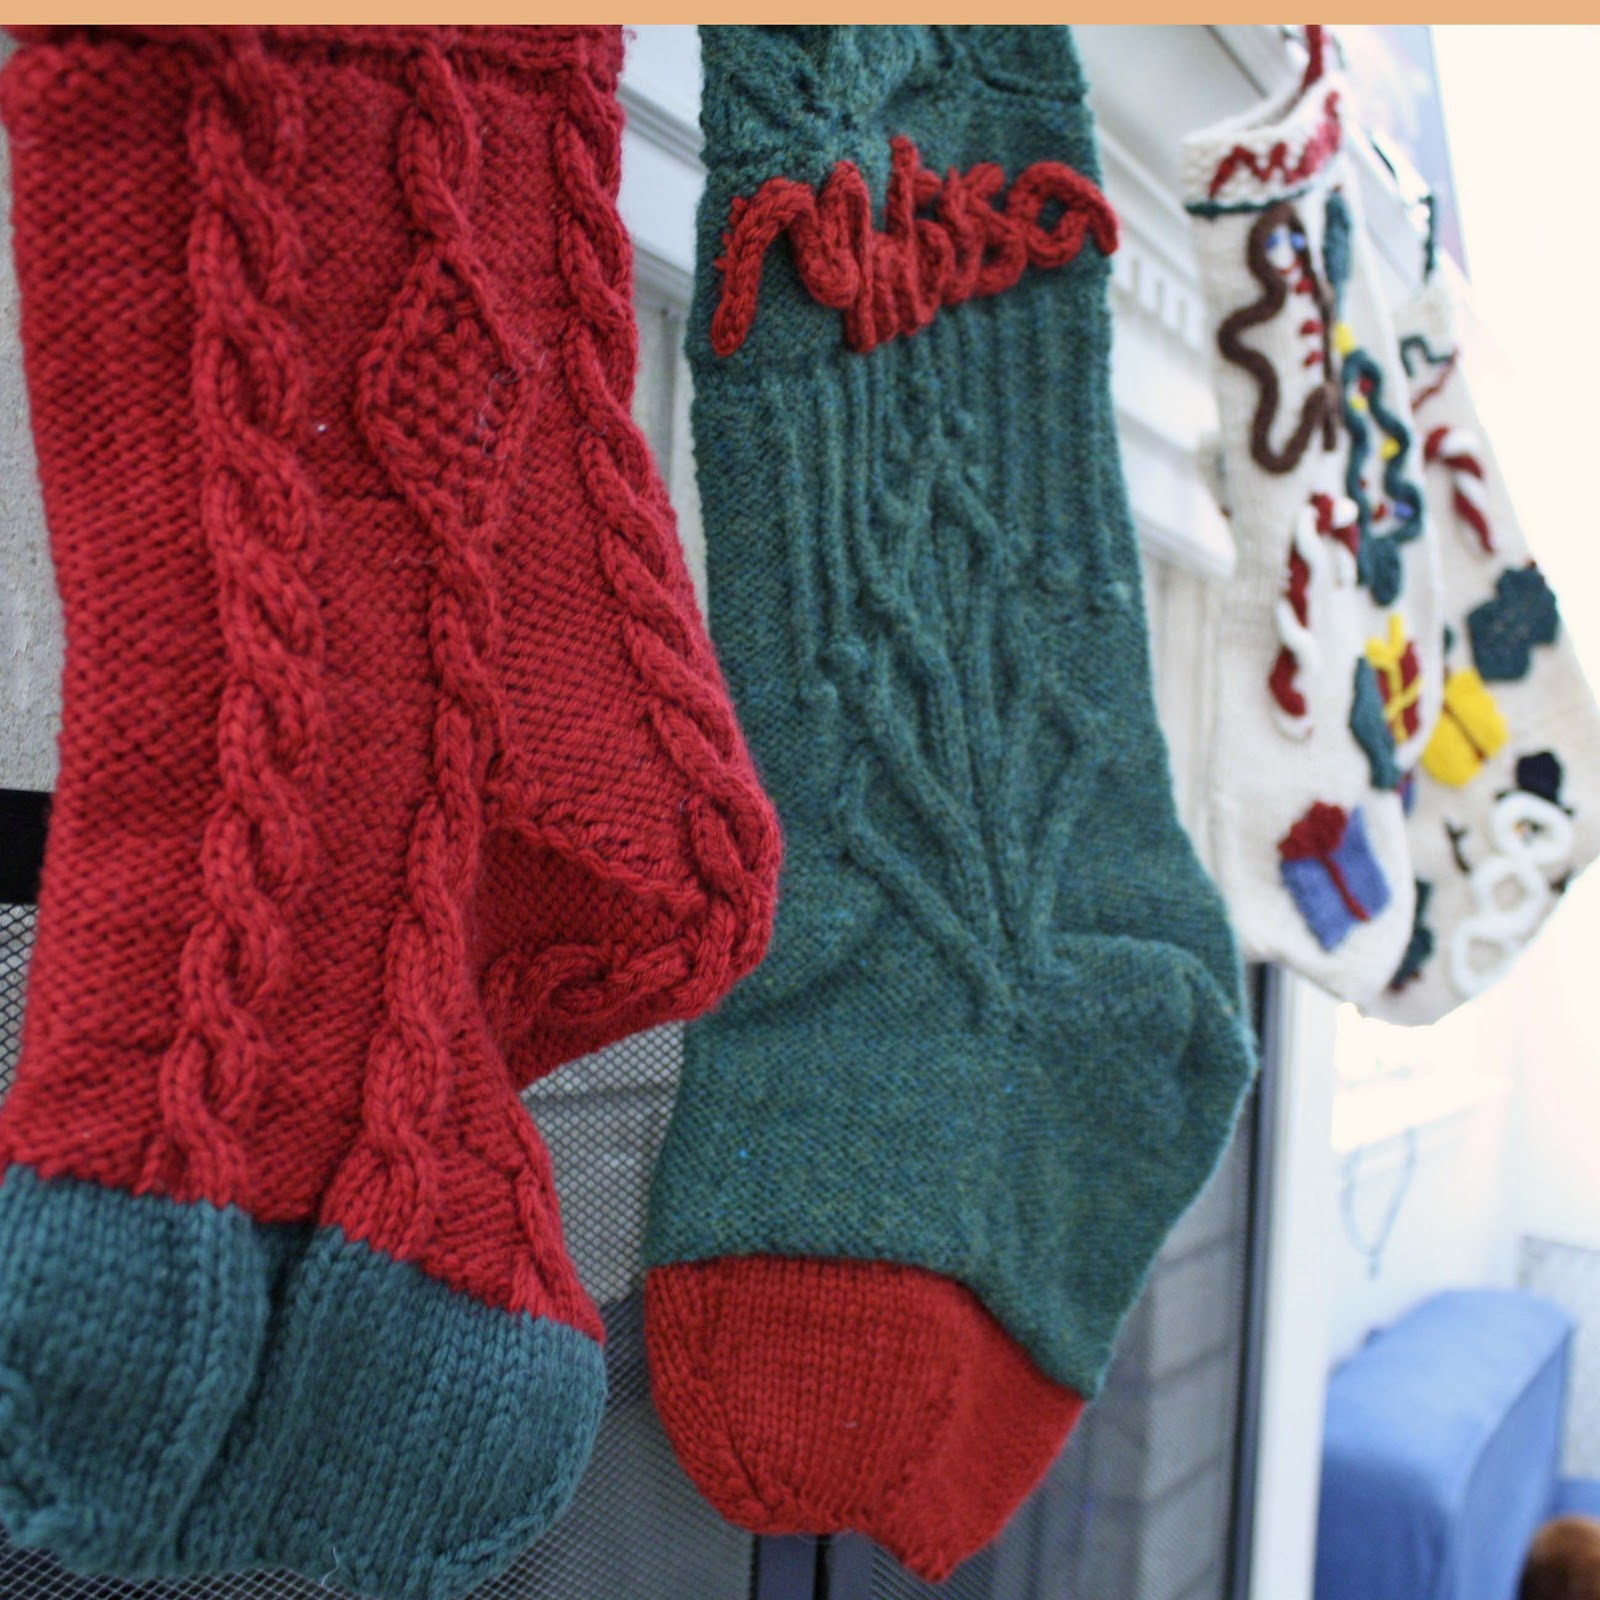 the stockings are handknit by me we also have a large set of sewn stockings at my momu0027s house that iu0027ll showcase later this month